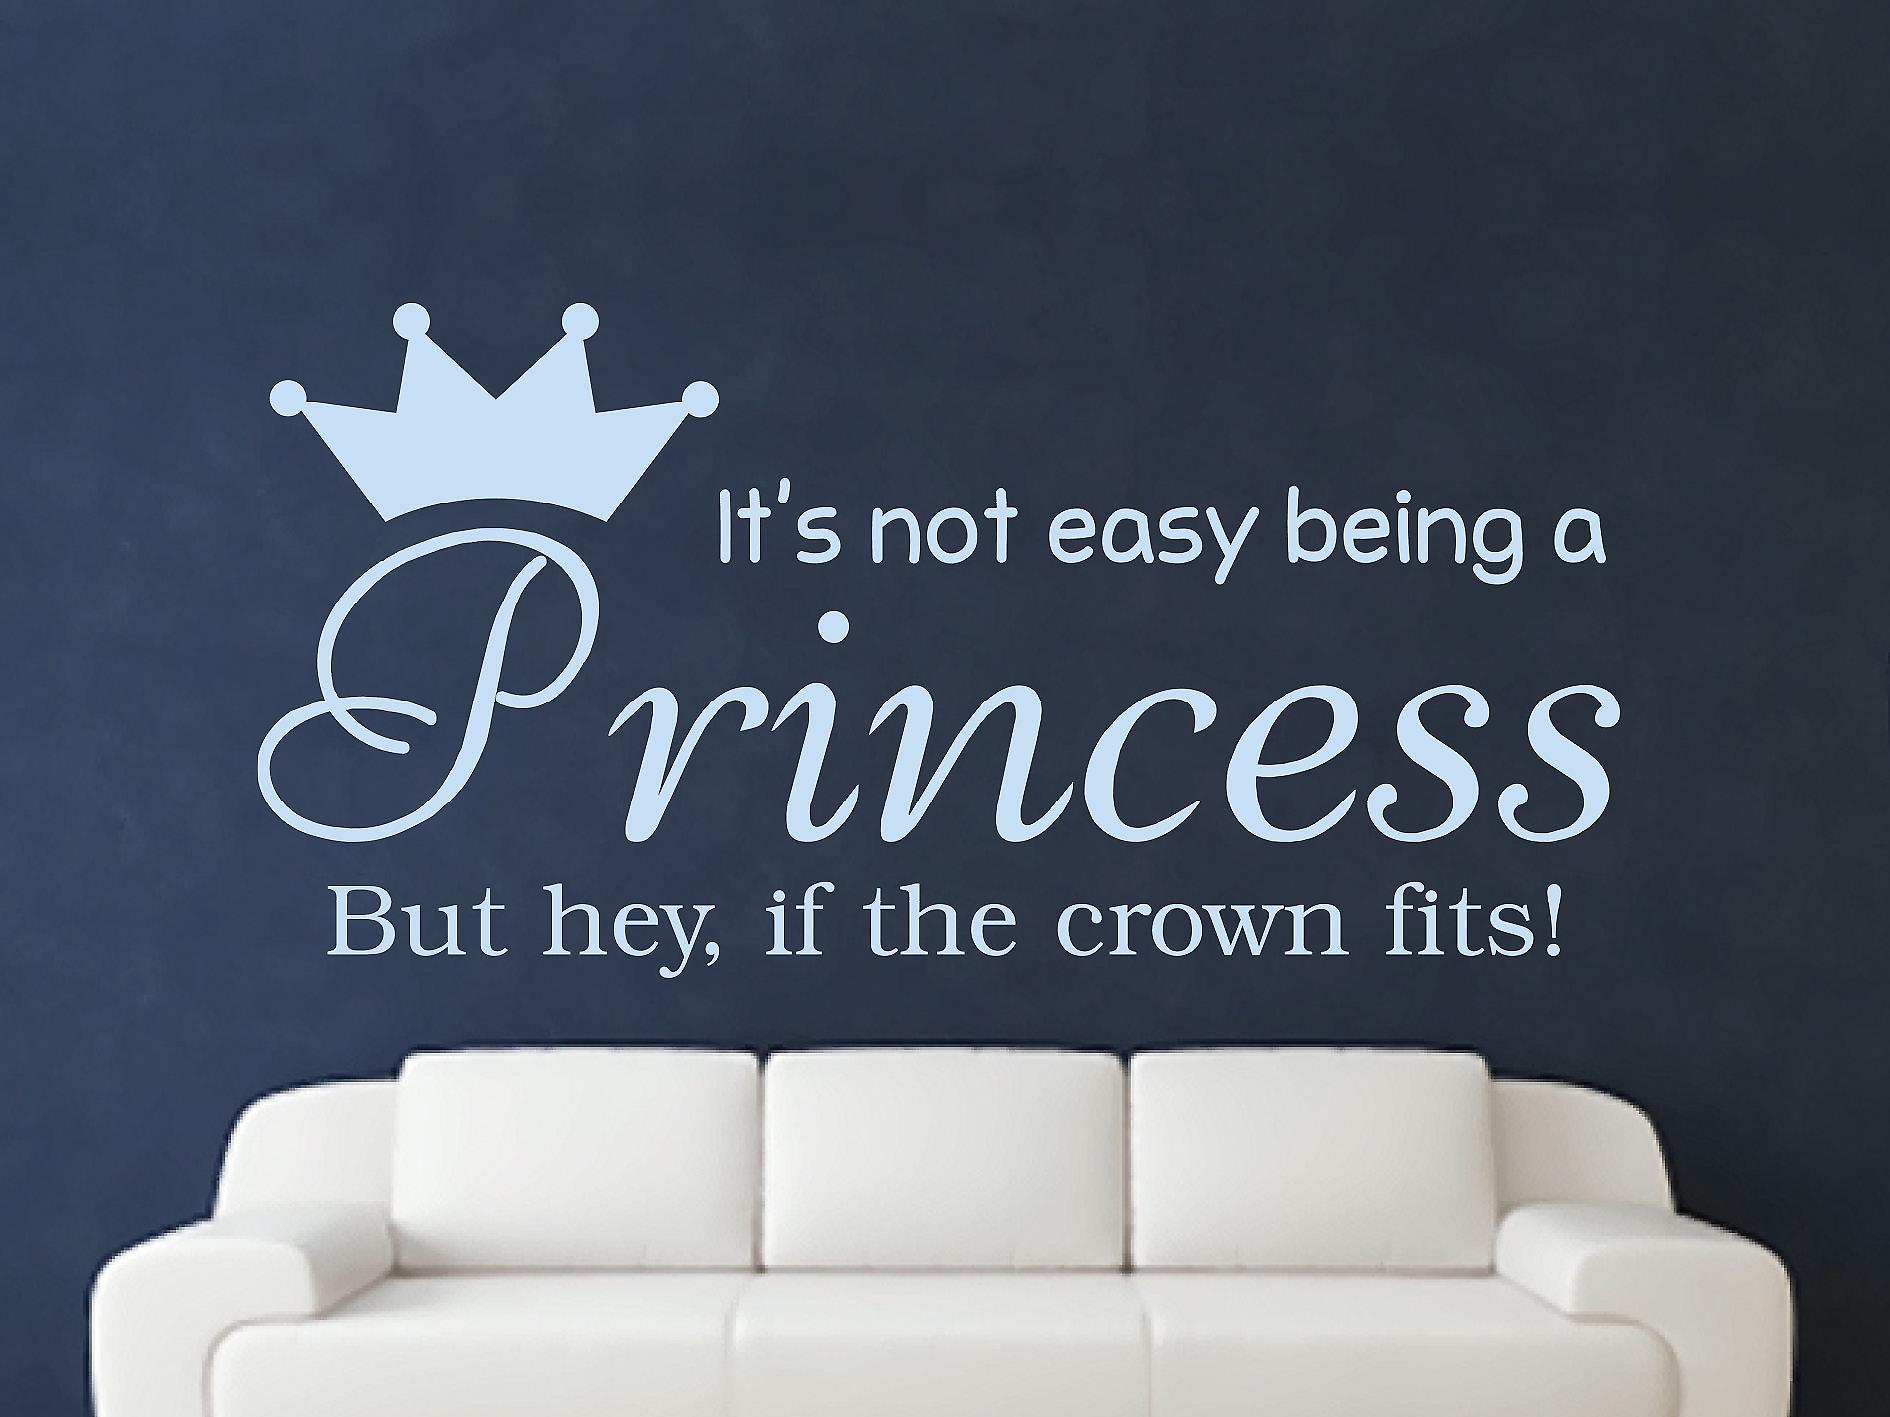 Being A Princess Wall Art Sticker - Pastel Blue